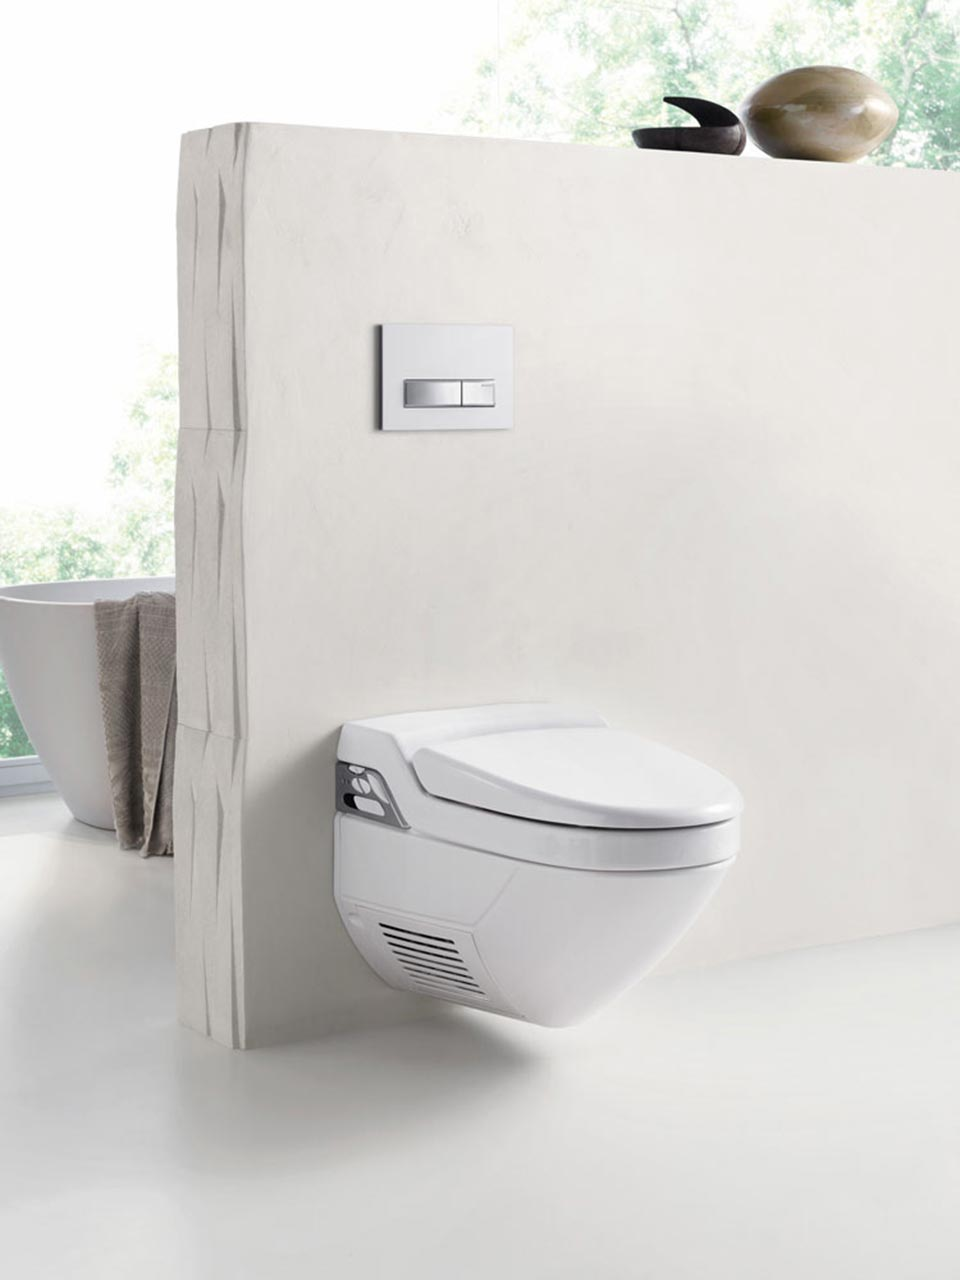 Geberit AquaClean 8000 Plus